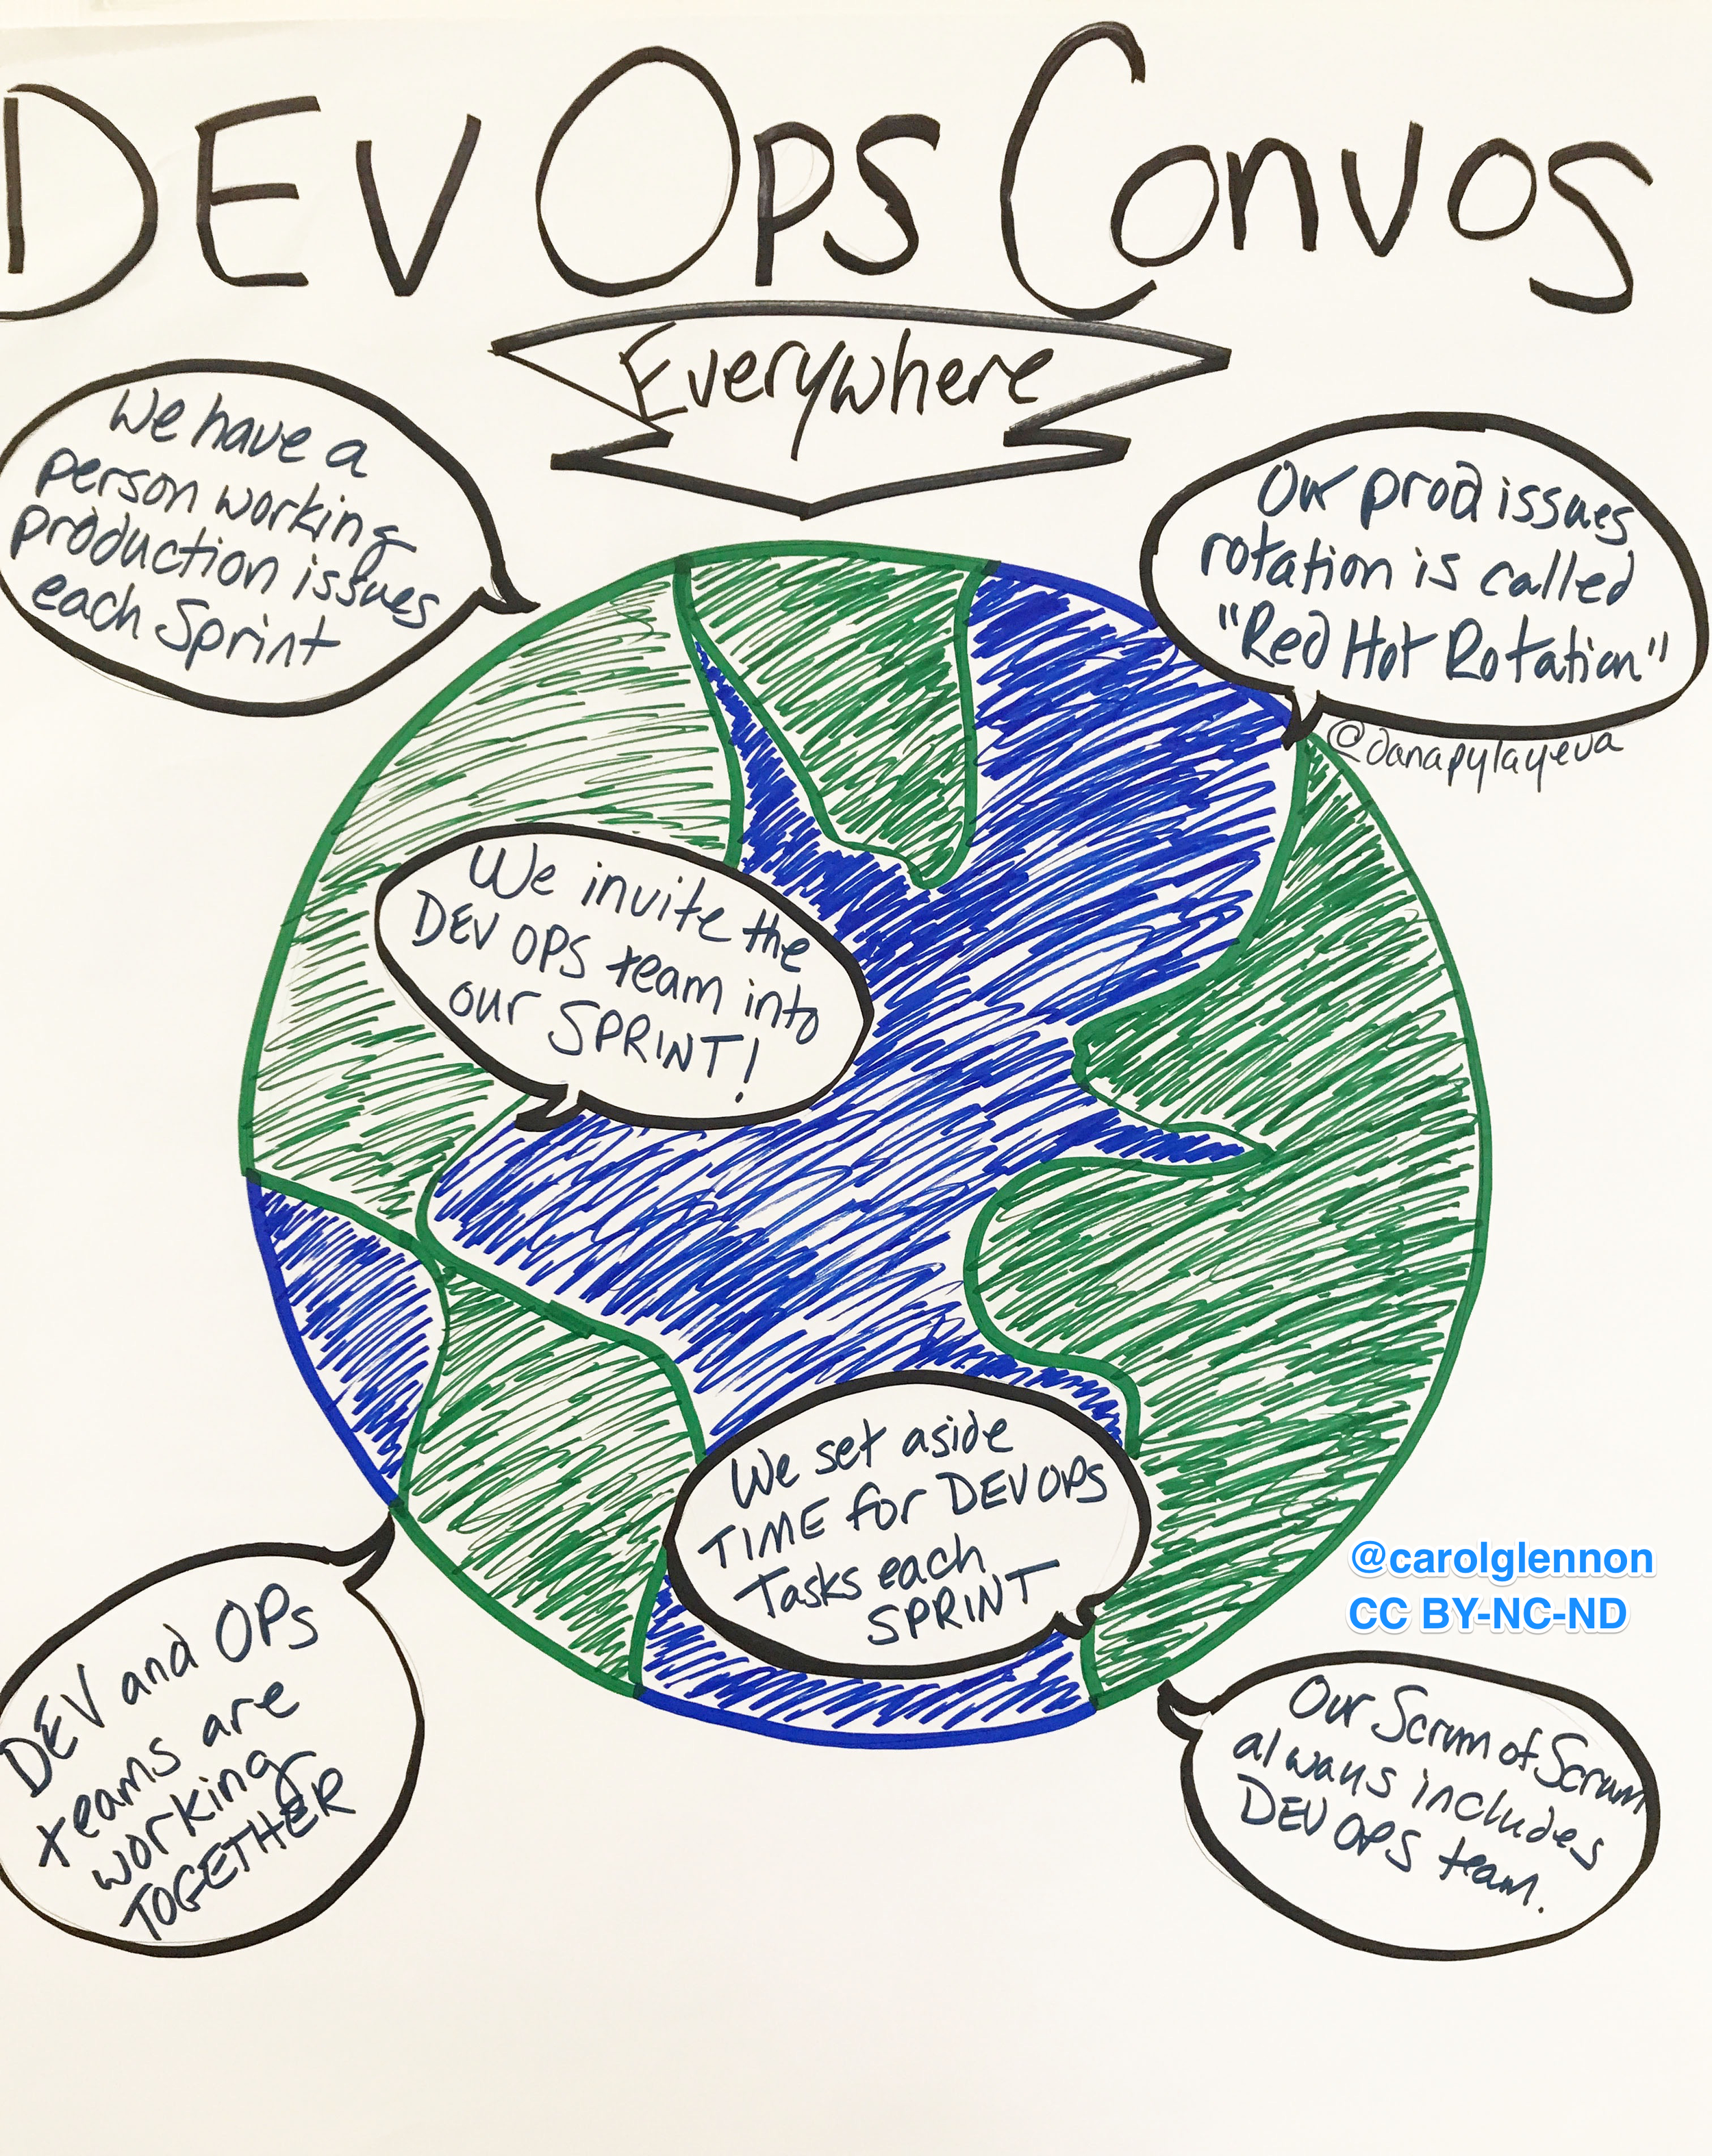 So many awesome conversations about how teams are working on DevOps